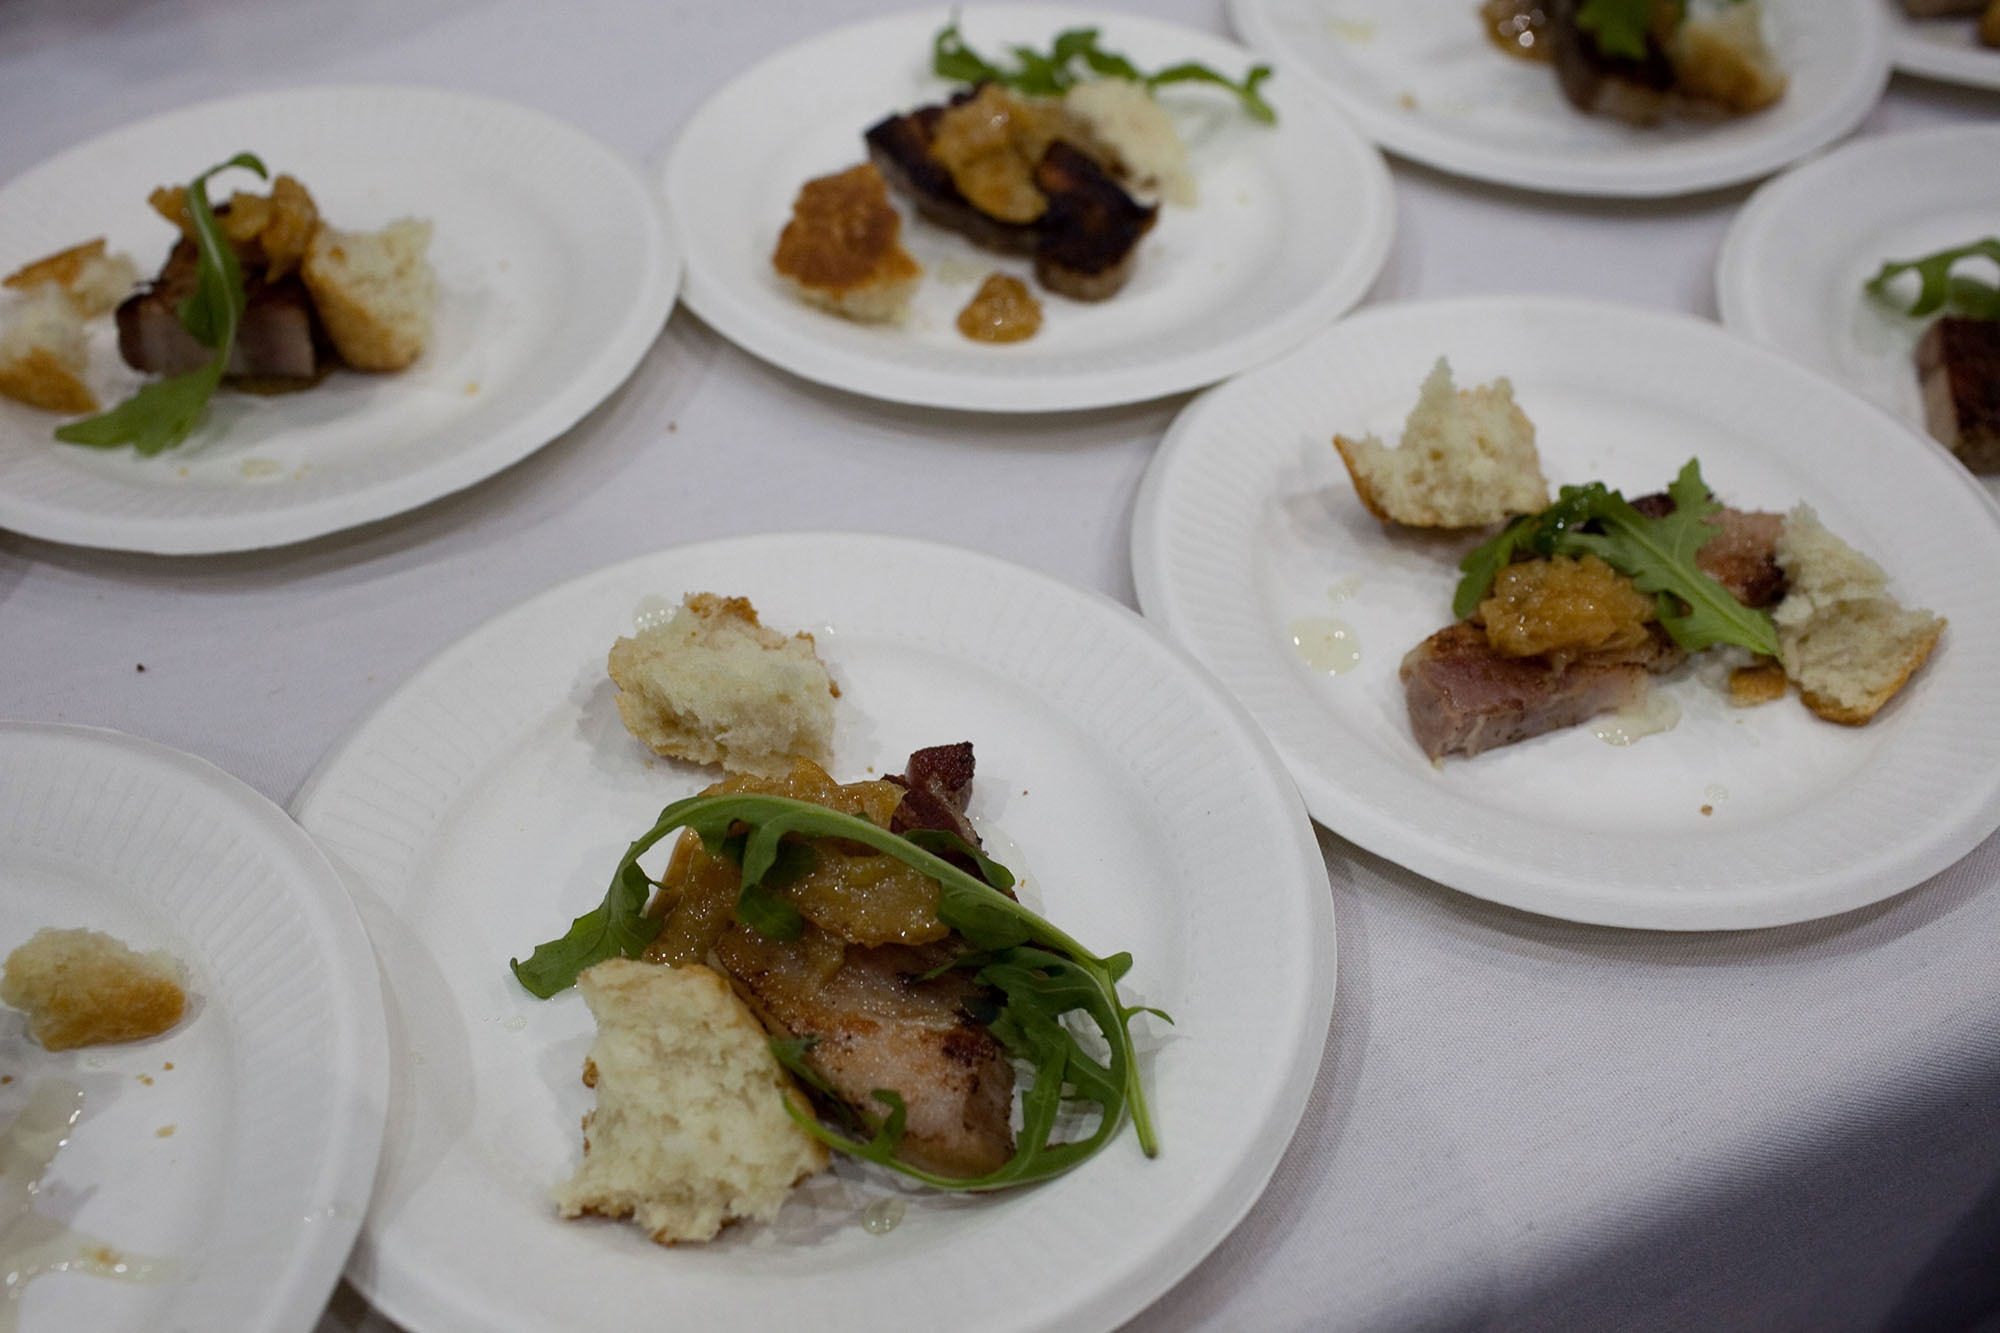 Roasted pork belly with meyer lemon marmalade, buttermilk biscuit and pine nut aillade from Vie at Baconfest Chicago